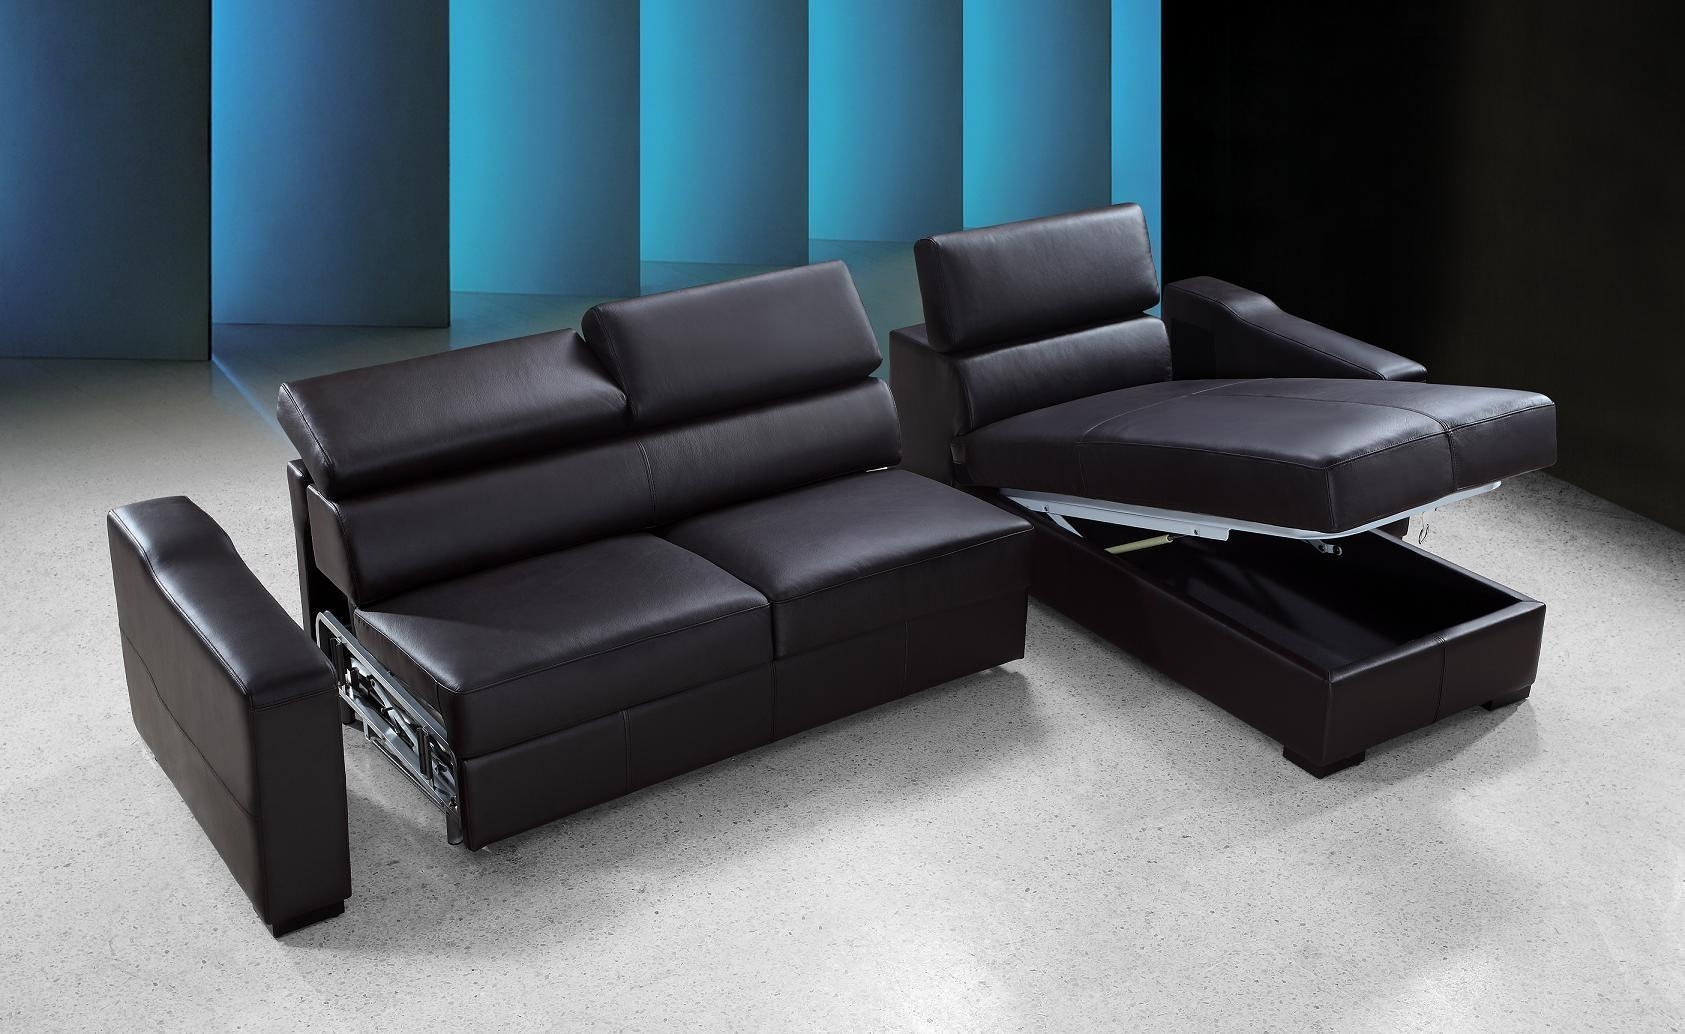 Flip Reversible Espresso Leather Sectional Sofa Bed W/ Storage With Leather Storage Sofas (View 3 of 21)